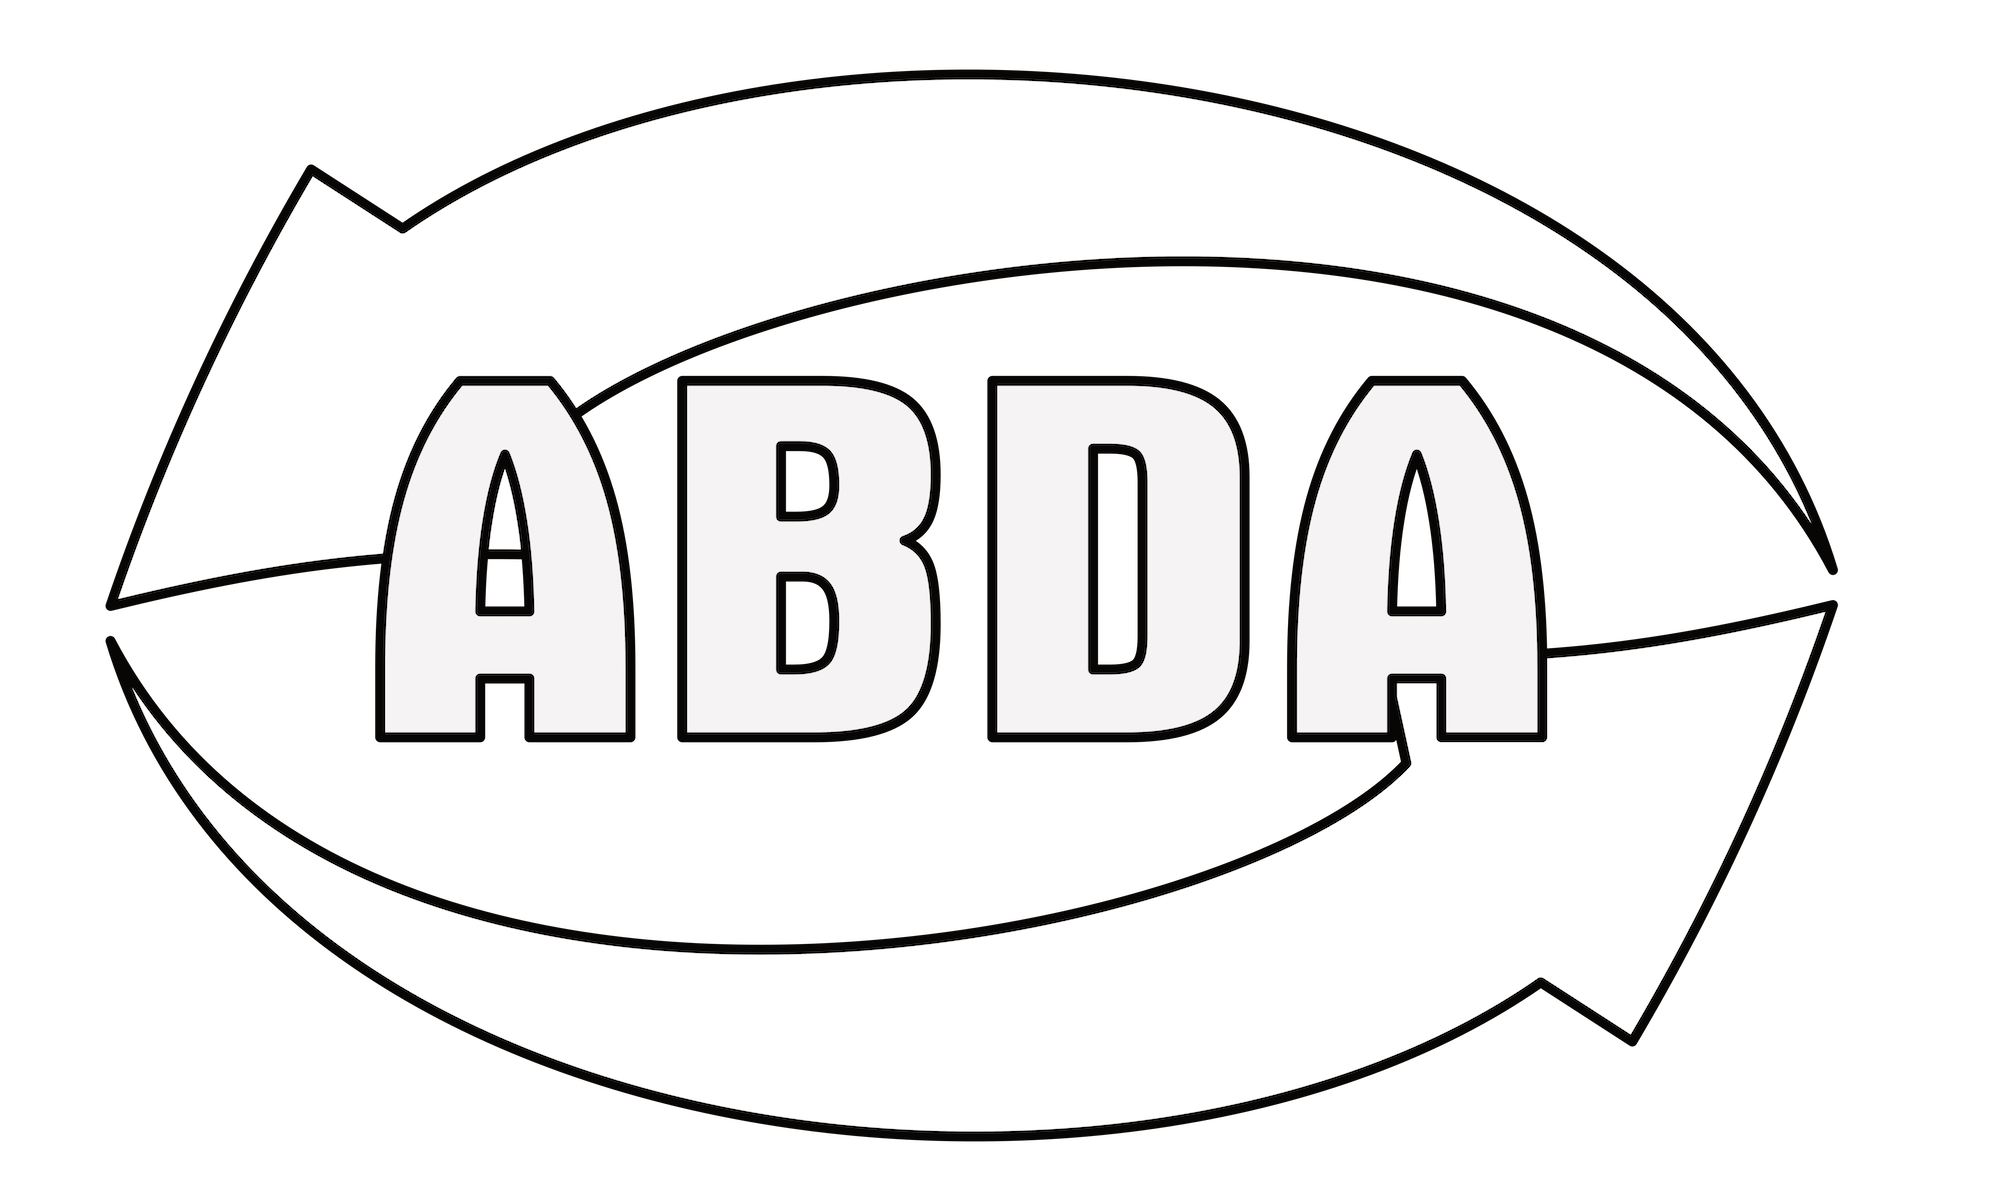 Welcome to ABDA.ca! - We support the over 200 Depots across Alberta in their efforts to serve you! If you are looking for your local Depot, please visit FindaDepot.ca. For all other Beverage Container Recycling information, please visit AlbertaDepot.ca